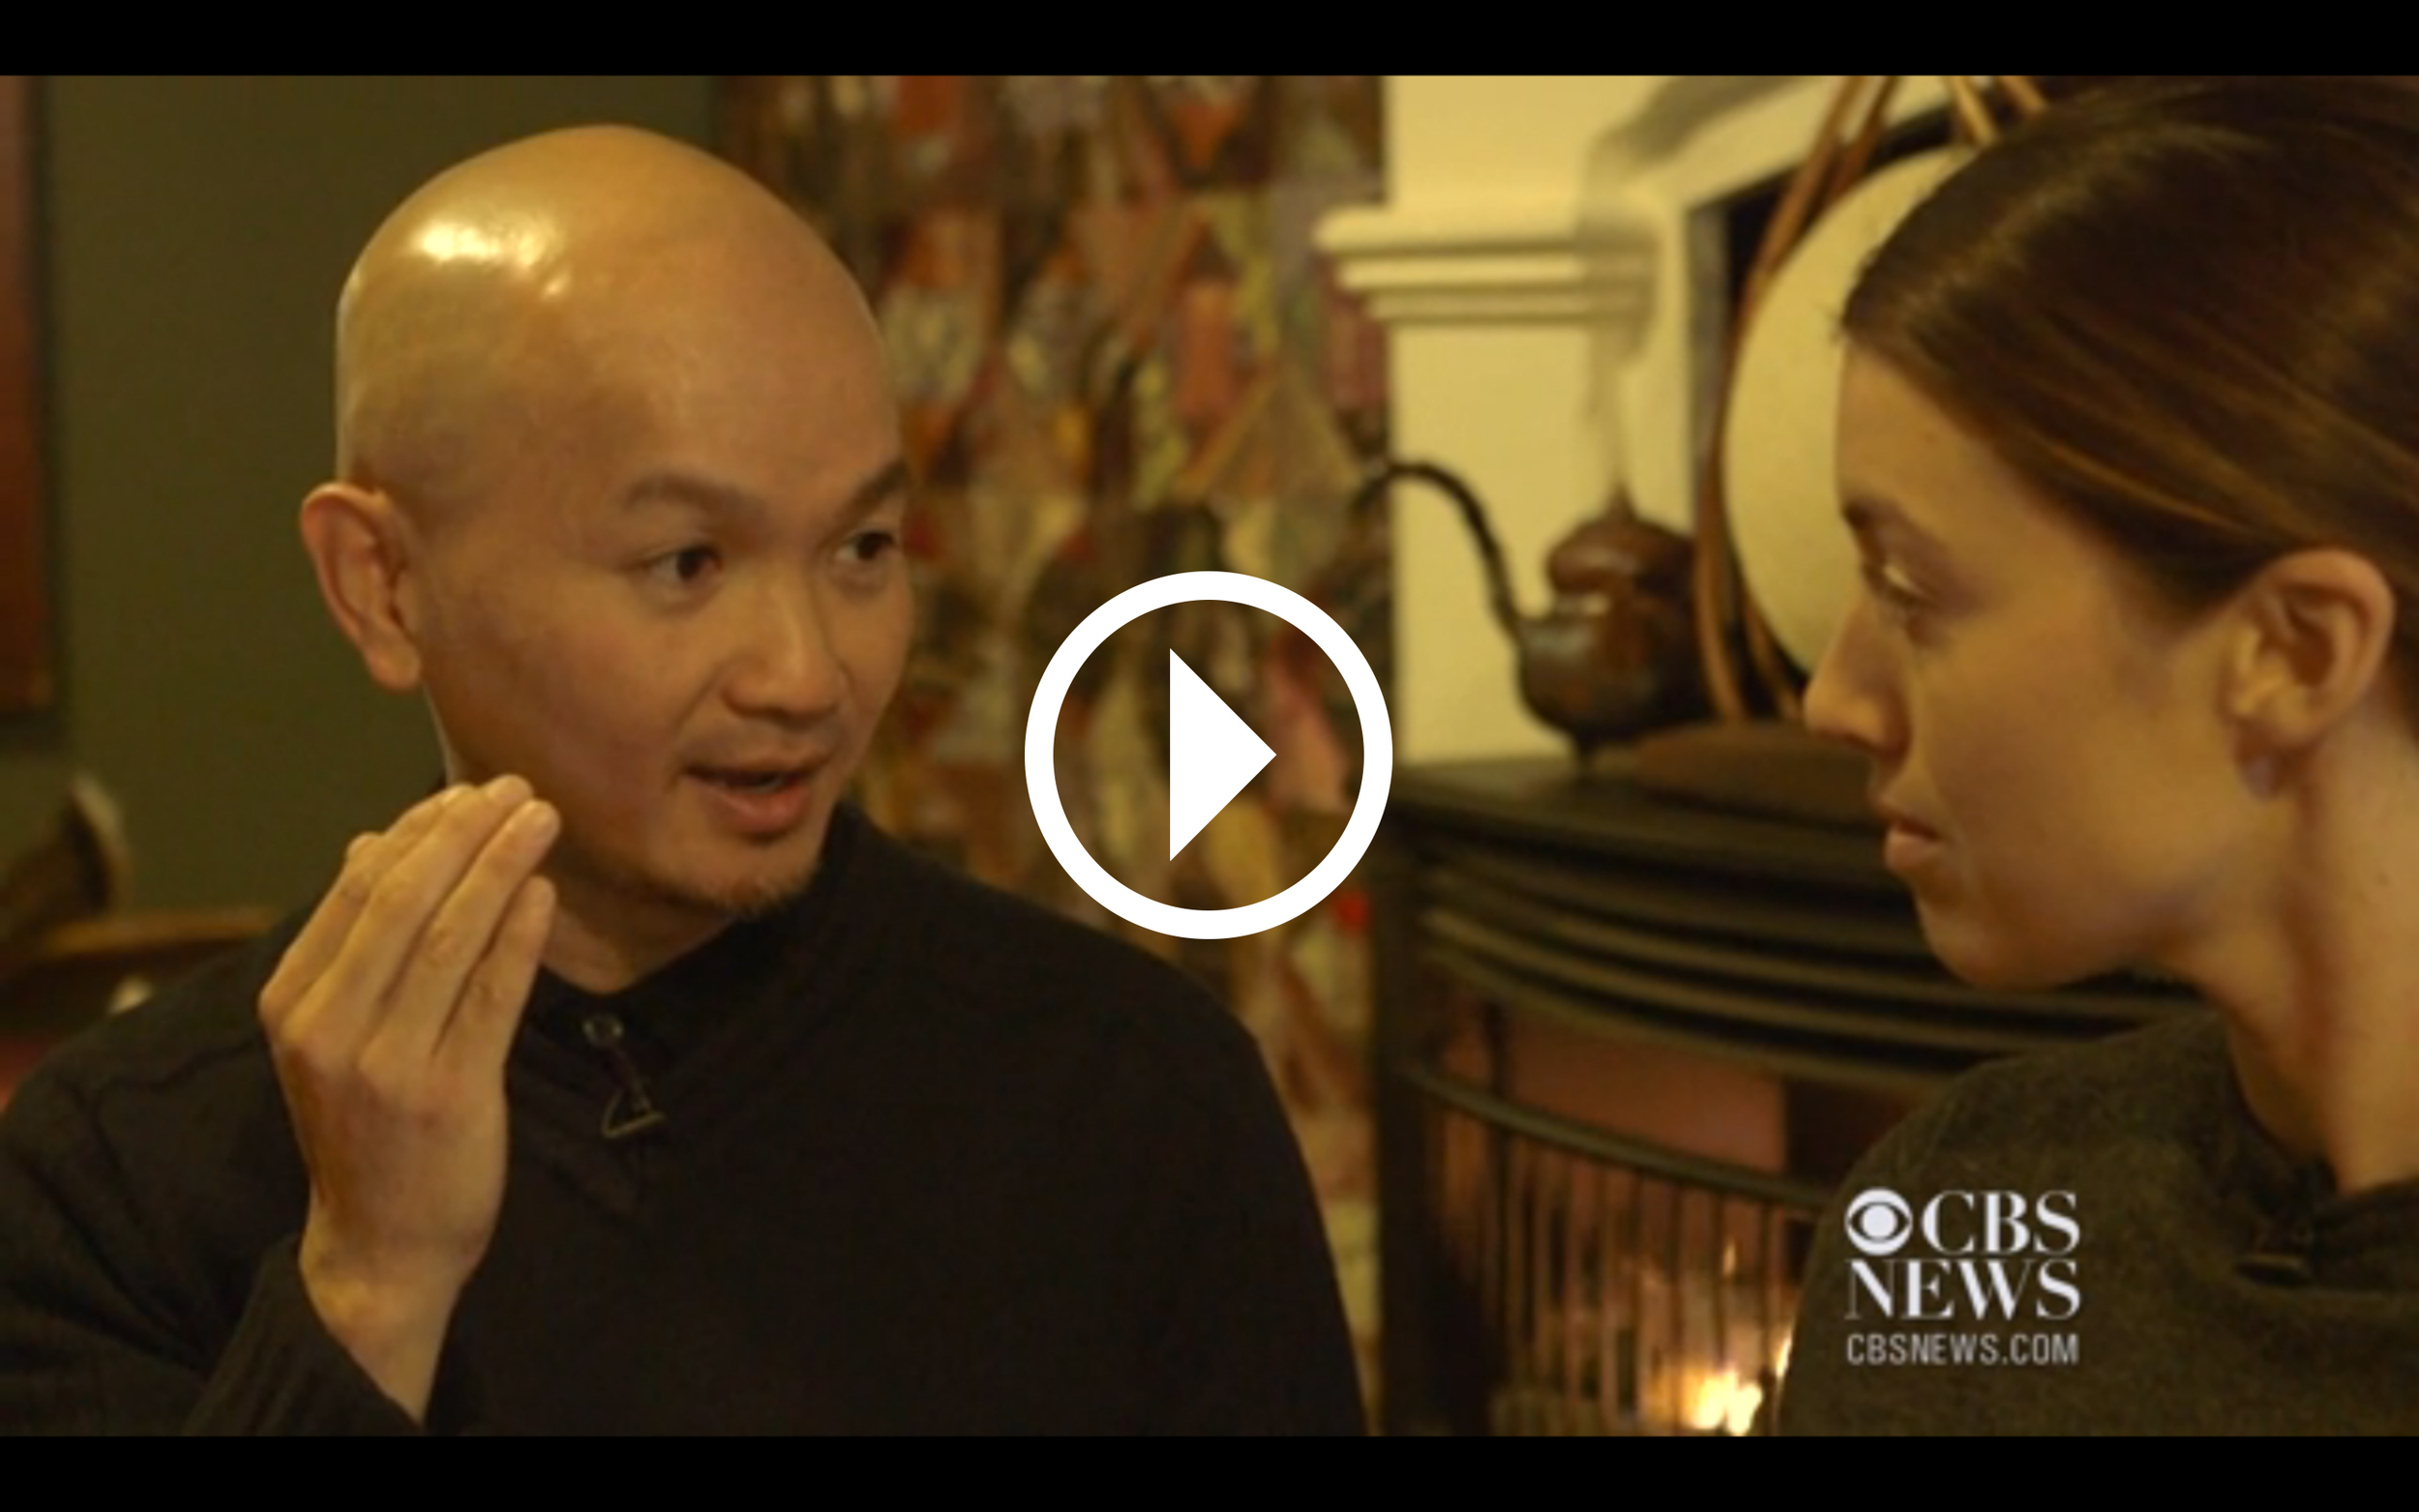 Featuring Dr. Home Nguyen in an interview with CBS News